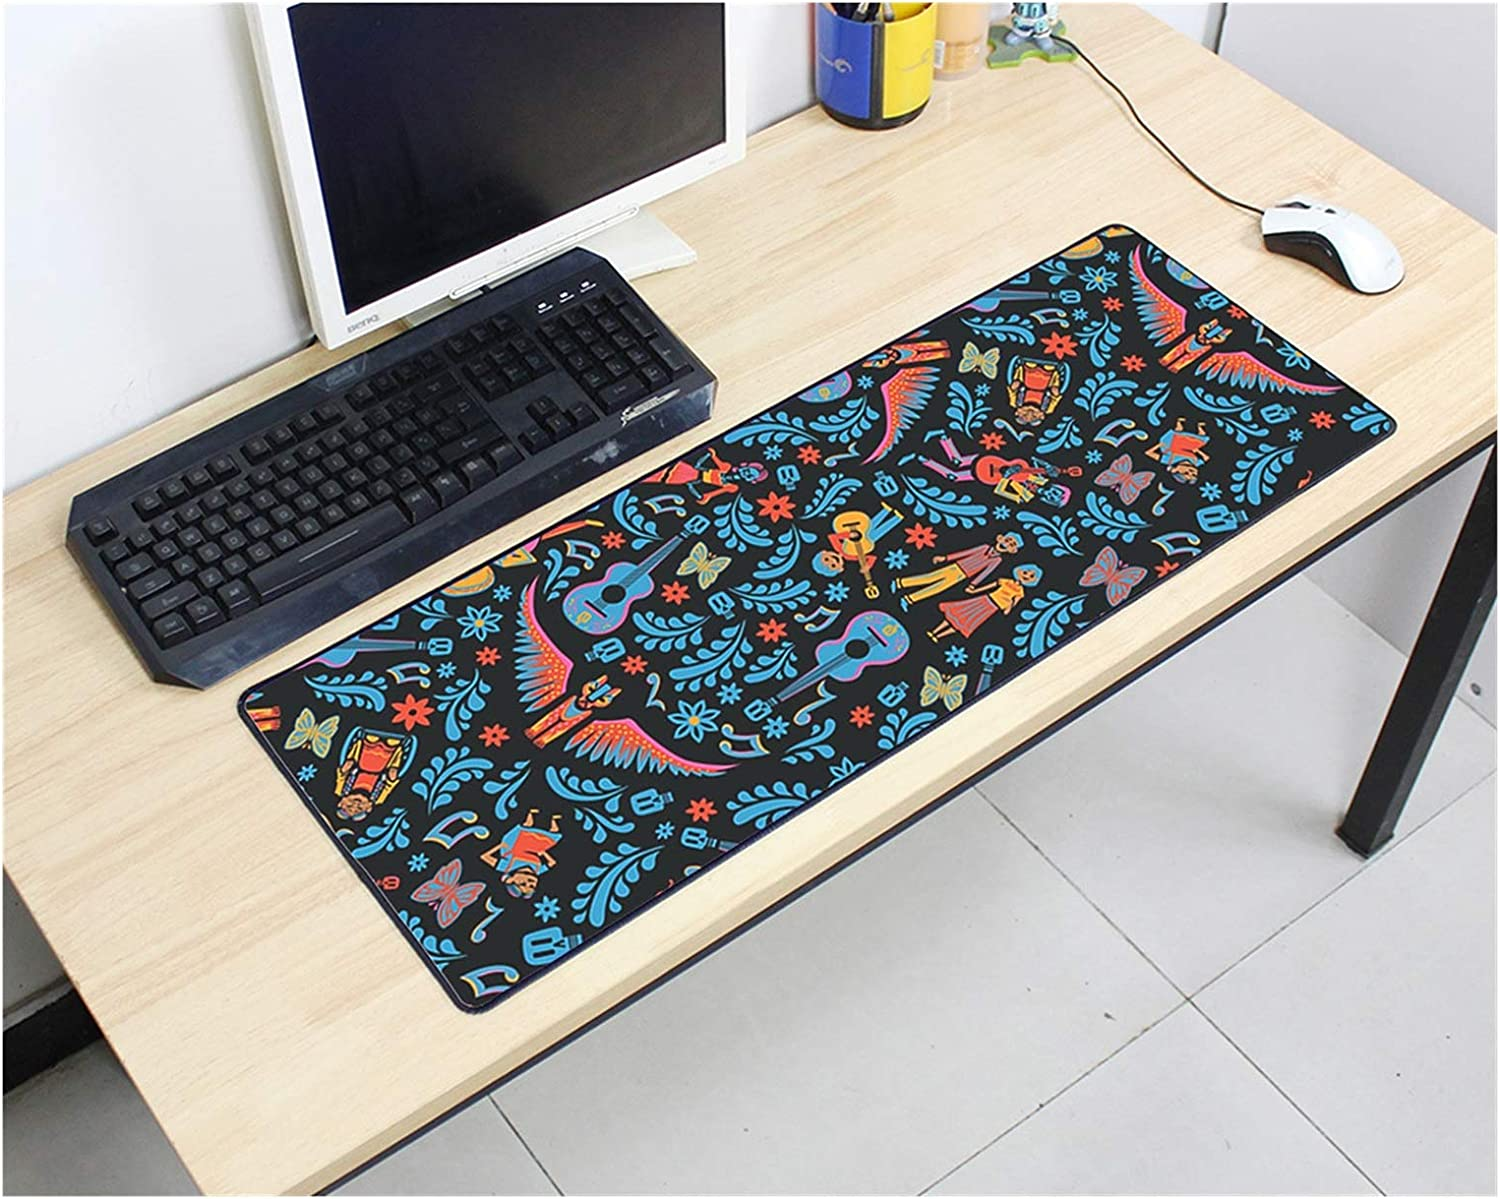 YZGLA Desk Mat Mouse pad Rubber Keyboards 800x300mm Speed Special price for a limited time Ga safety